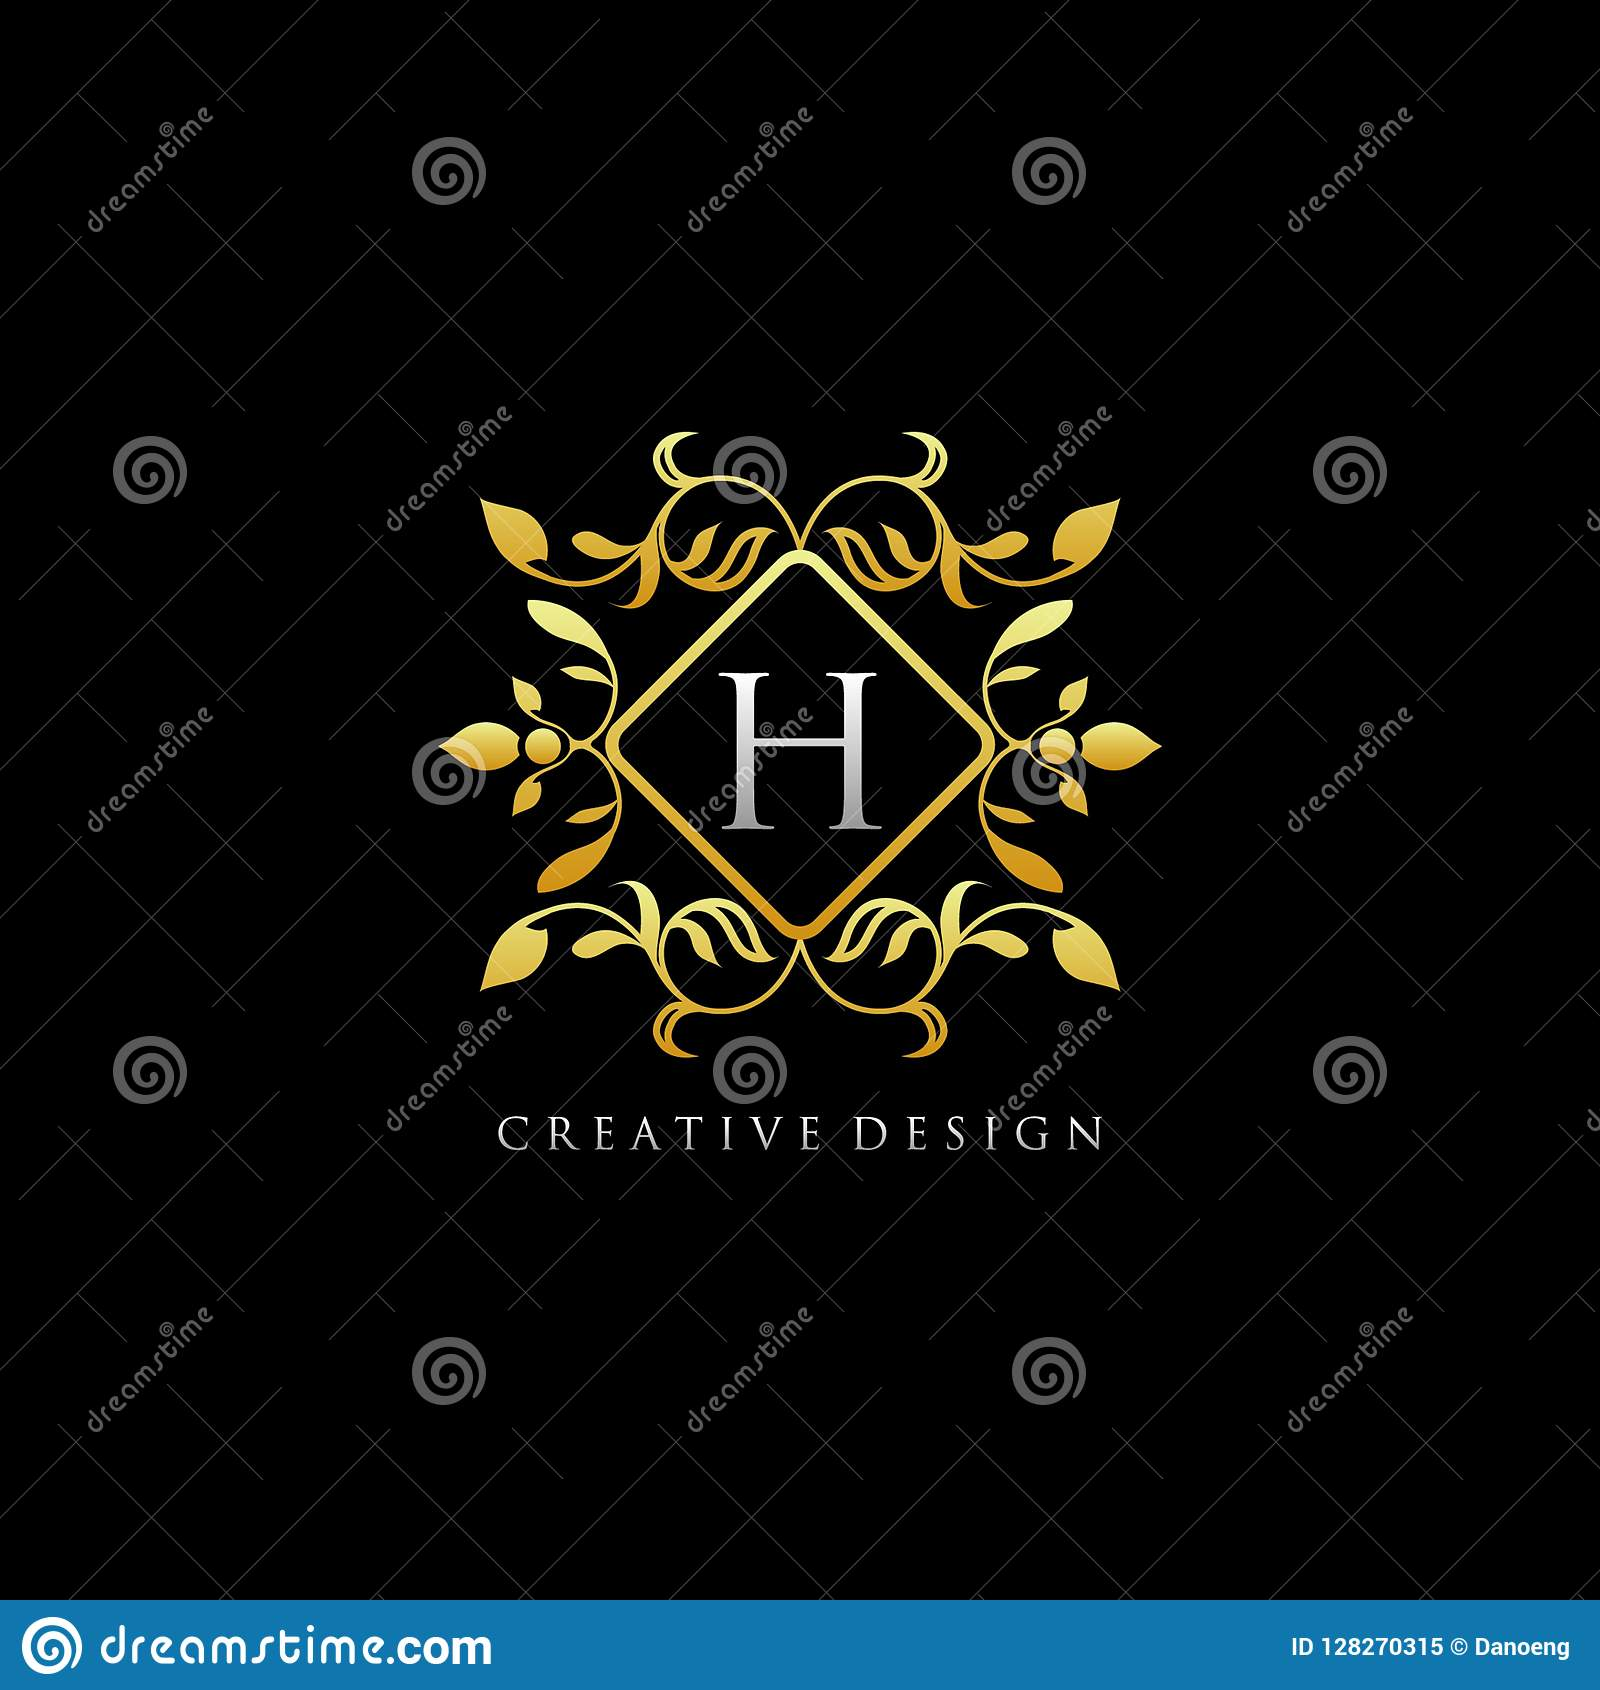 Company with golden h logo